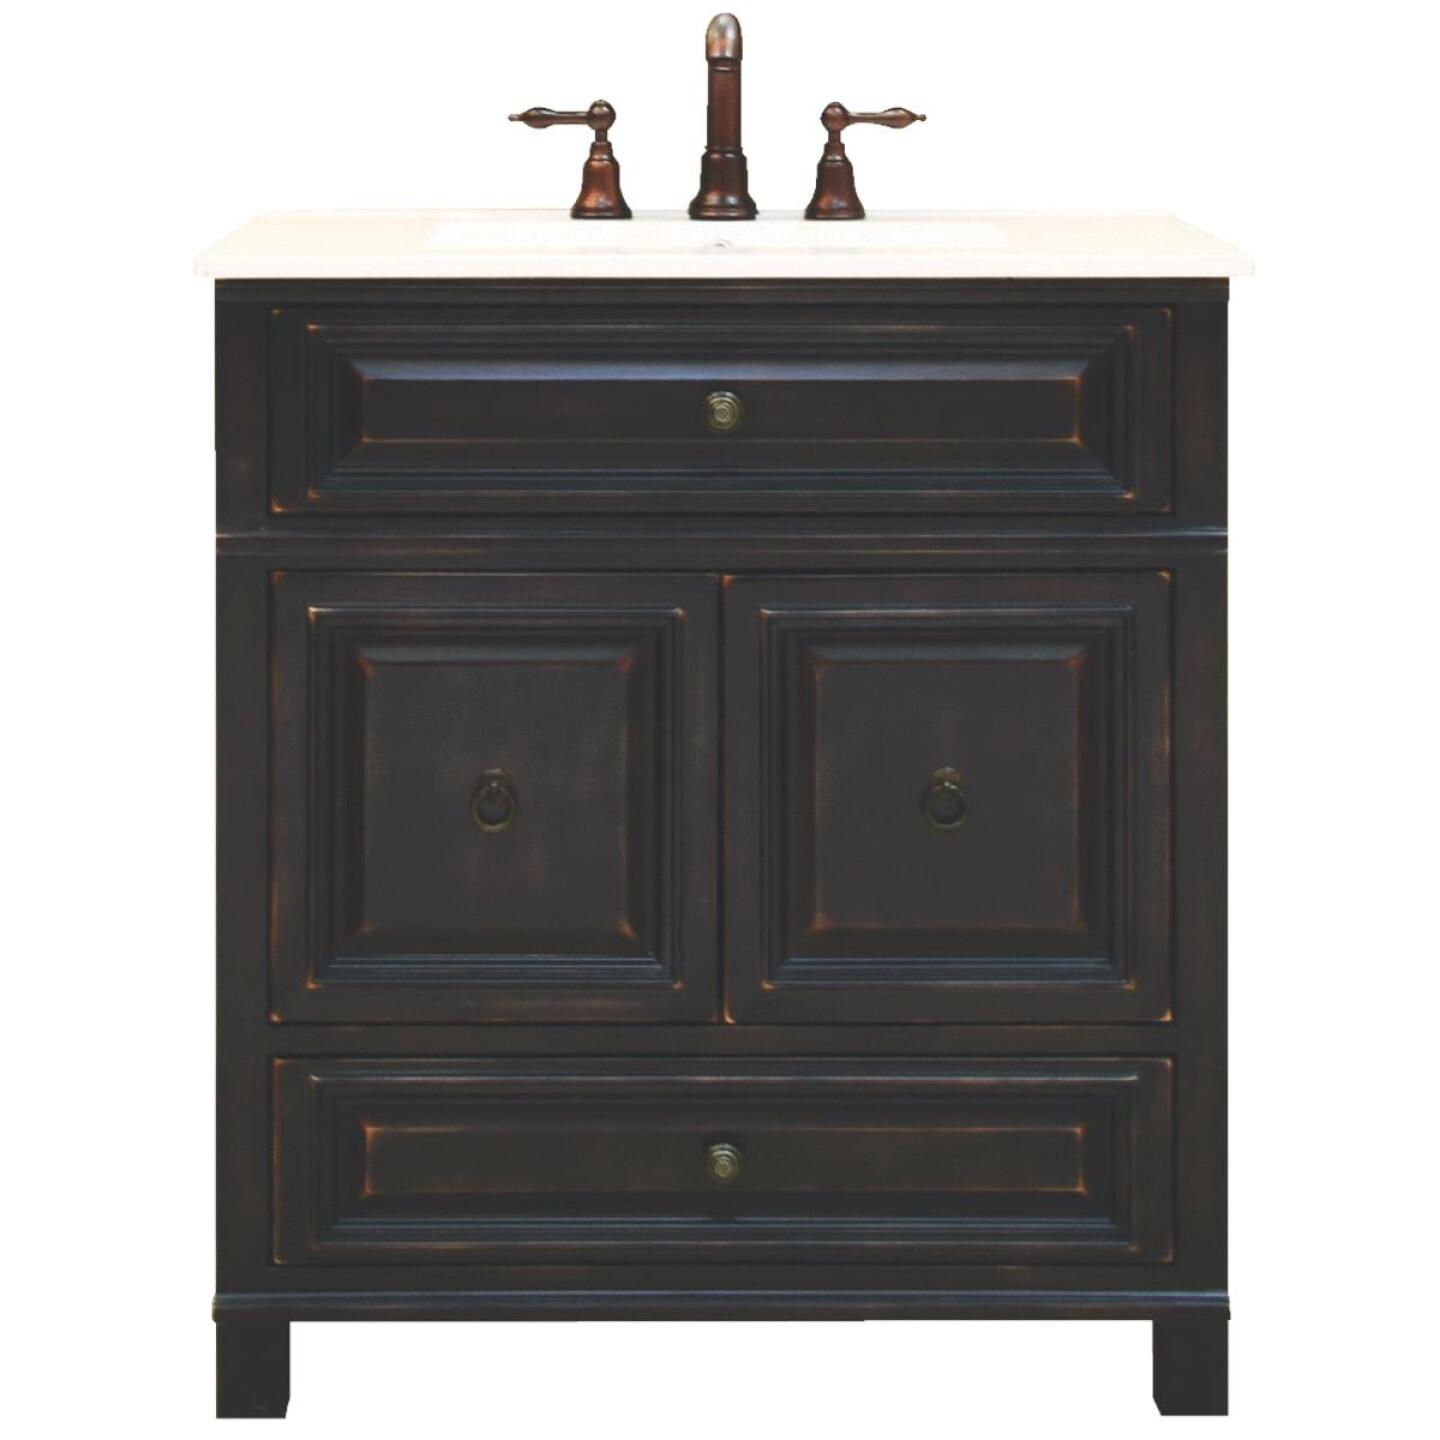 Sunny Wood Barton Hill Black Onyx 30 In. W x 34 In. H x 21 In. D Vanity Base, 2 Door/1 Drawer Image 291